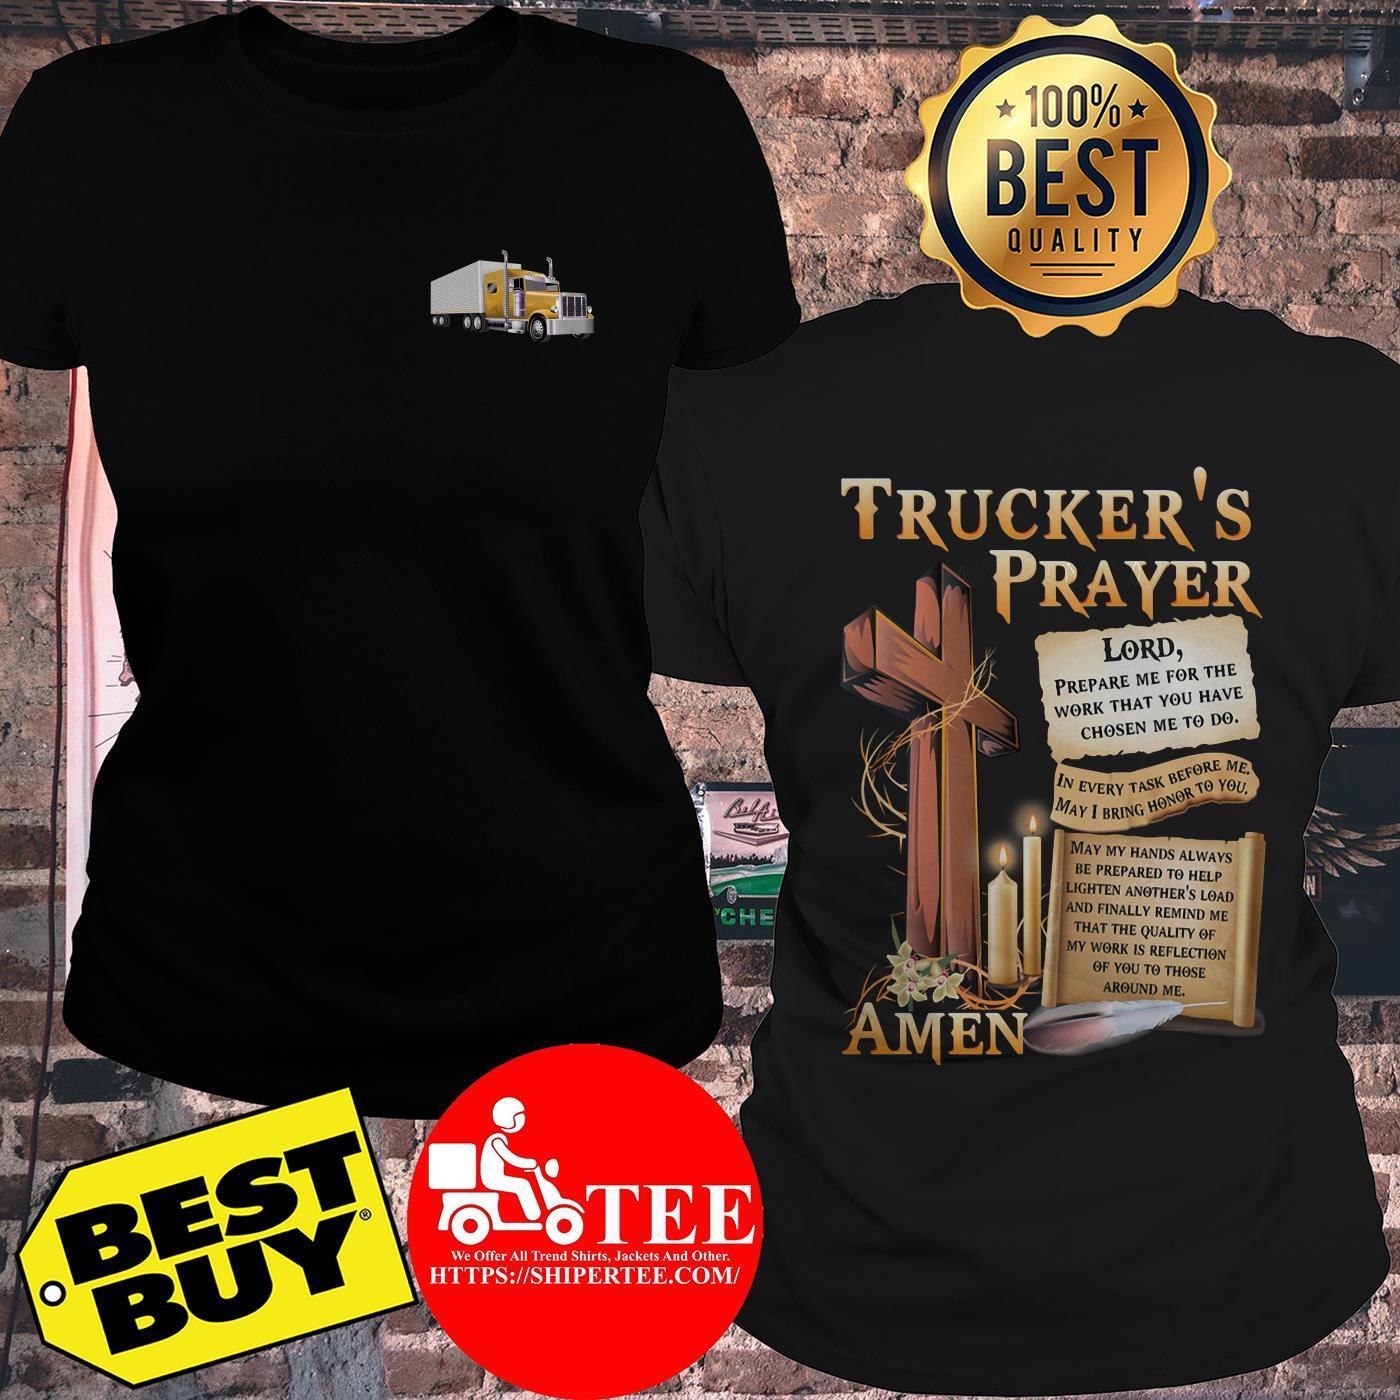 Truckers Prayer Lord Prepare Me For The Work That You Have Chosen Me To Do Wooden ladies tee